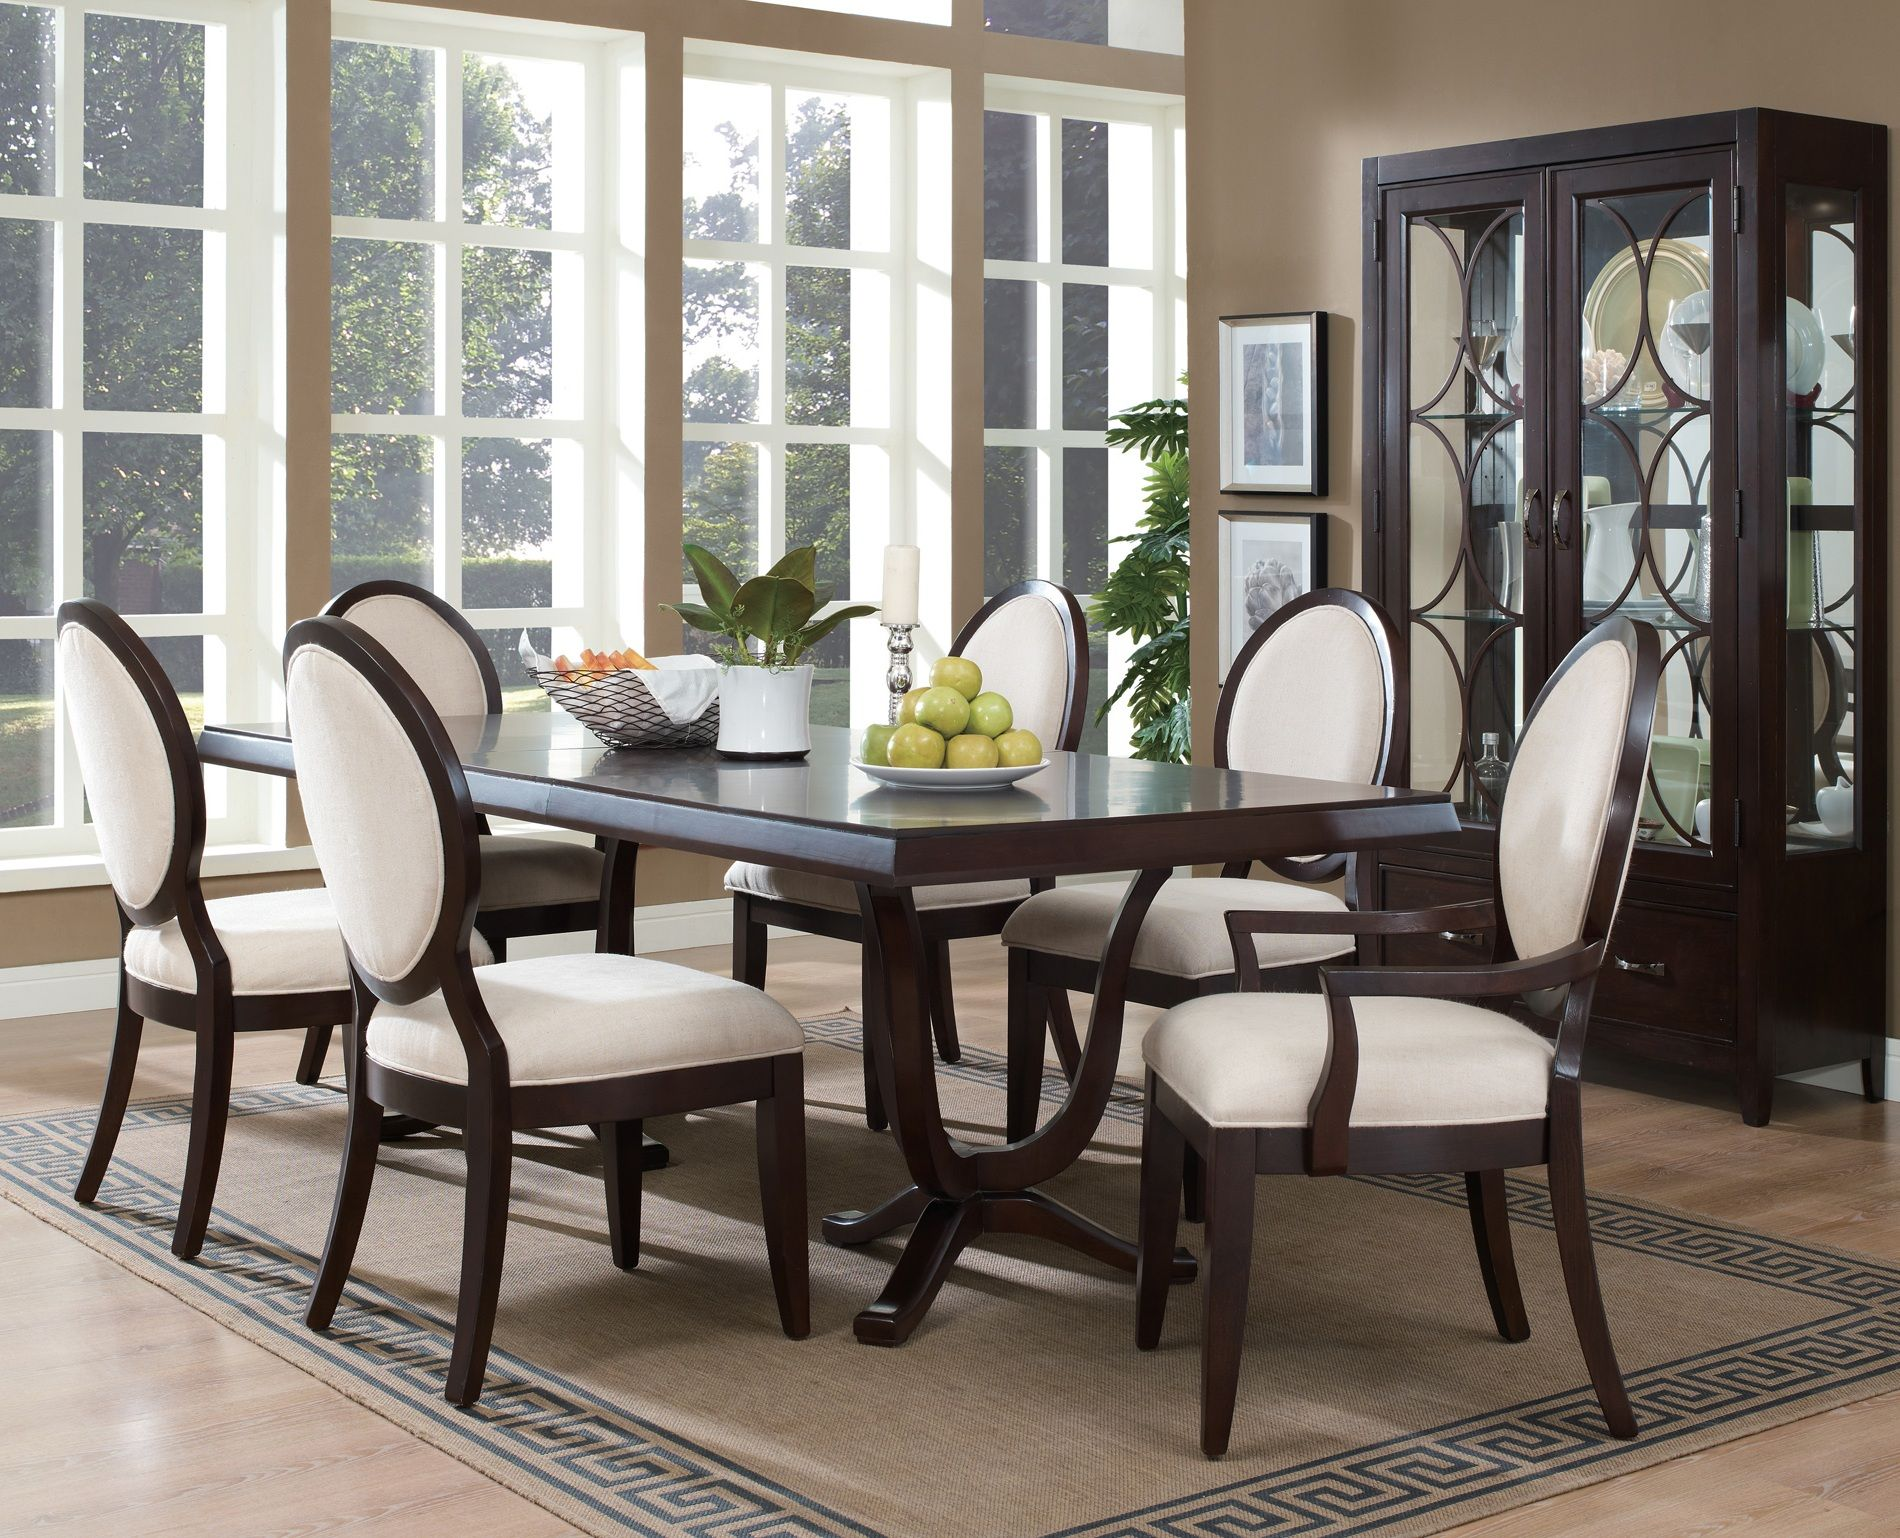 Black wood dining table set - Black Wood Dining Table Set